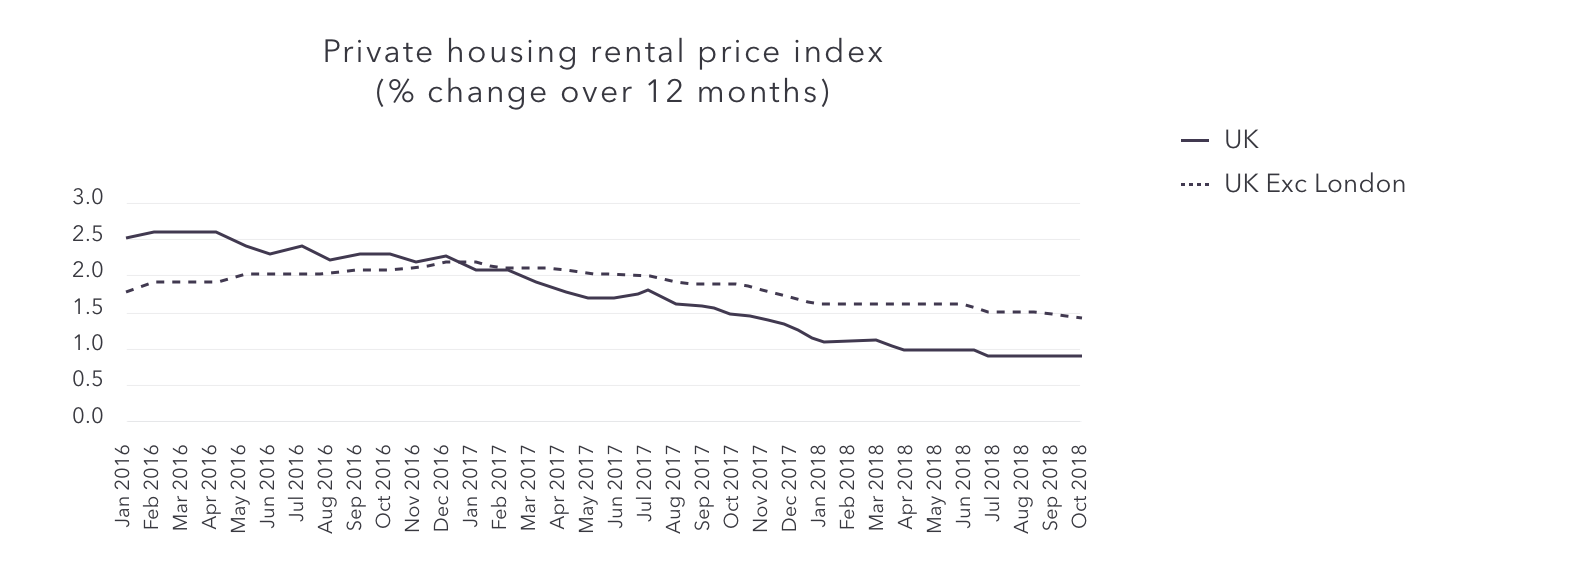 Private housing rental price index